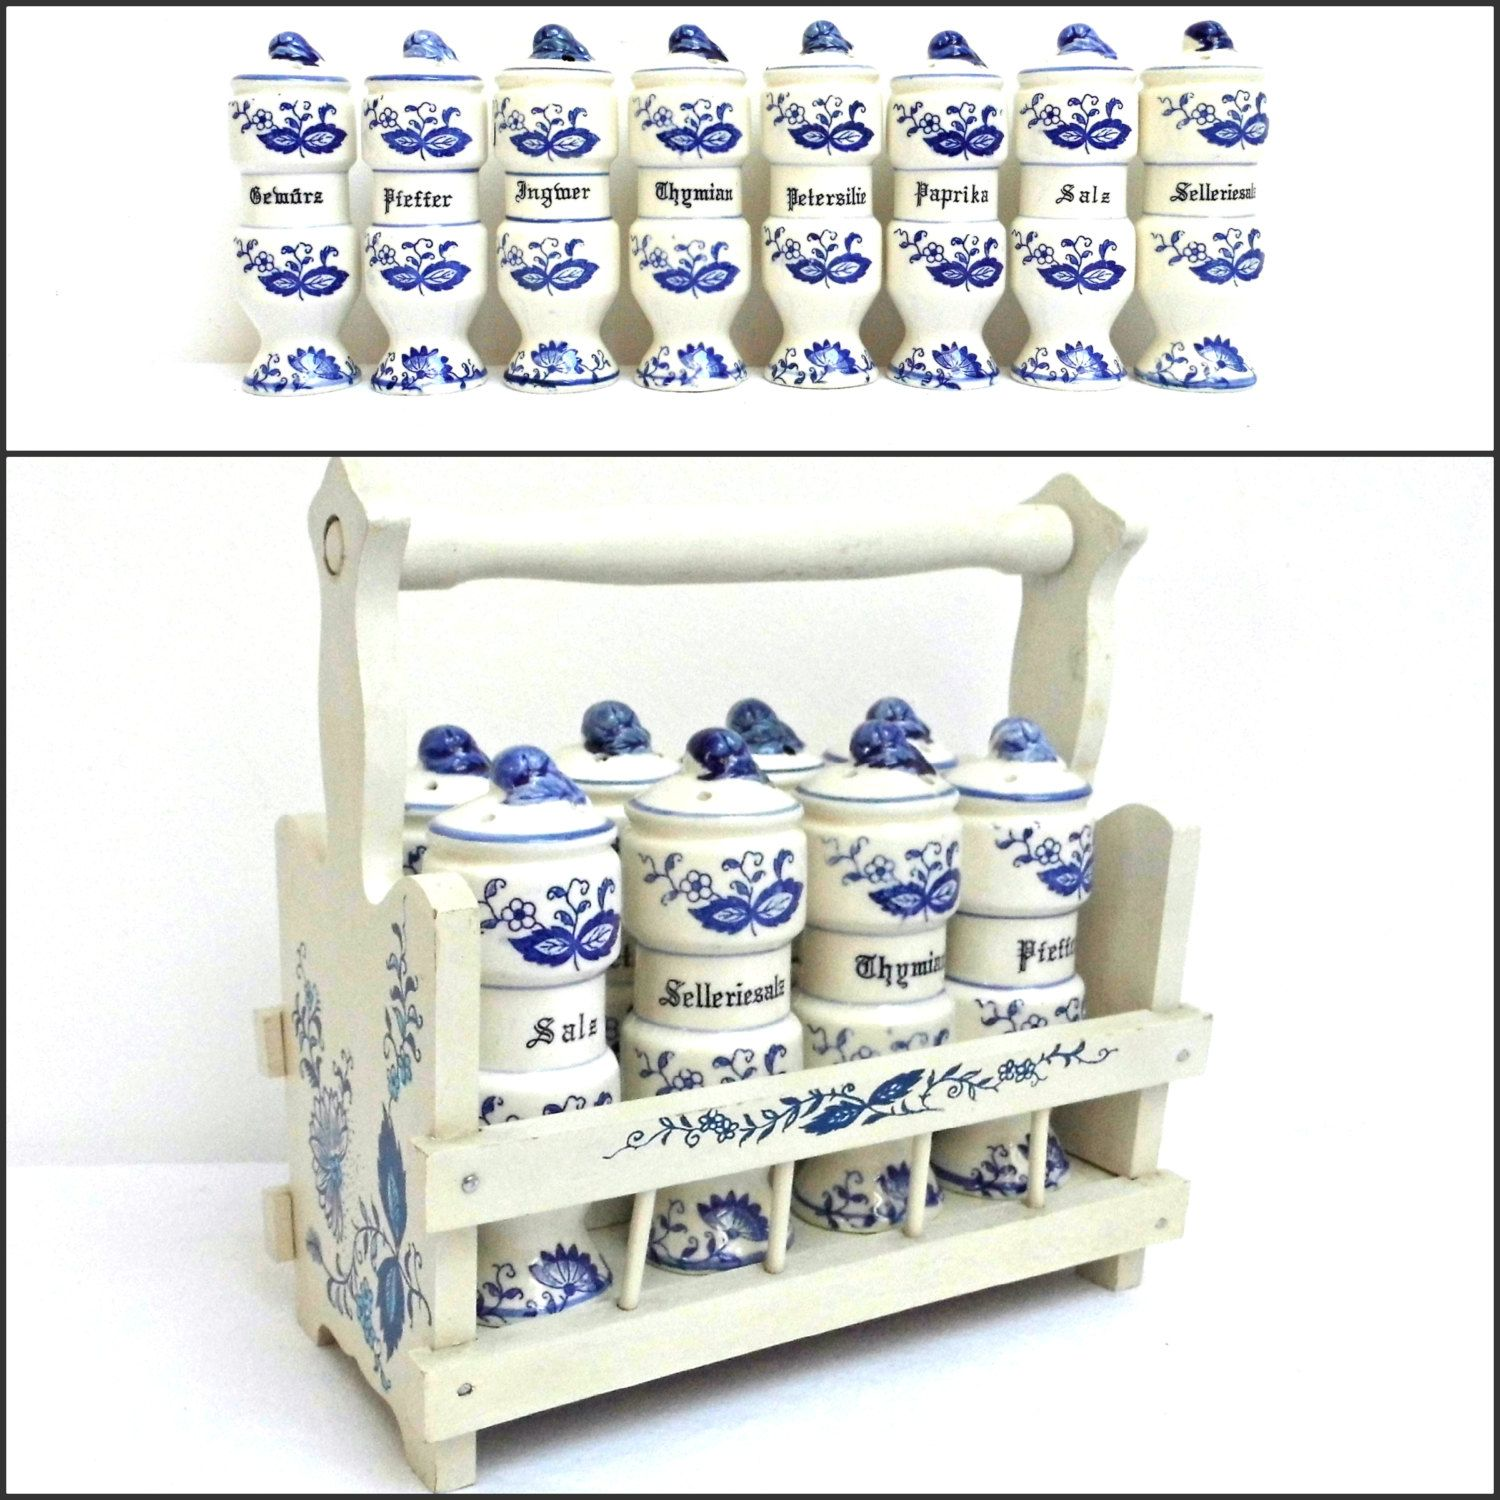 vintage wood spice rack caddy holder german 8 white blue ceramic vintage wood spice rack caddy holder german 8 white blue ceramic spice jar canister container kitchen counter display storage shabby cottage